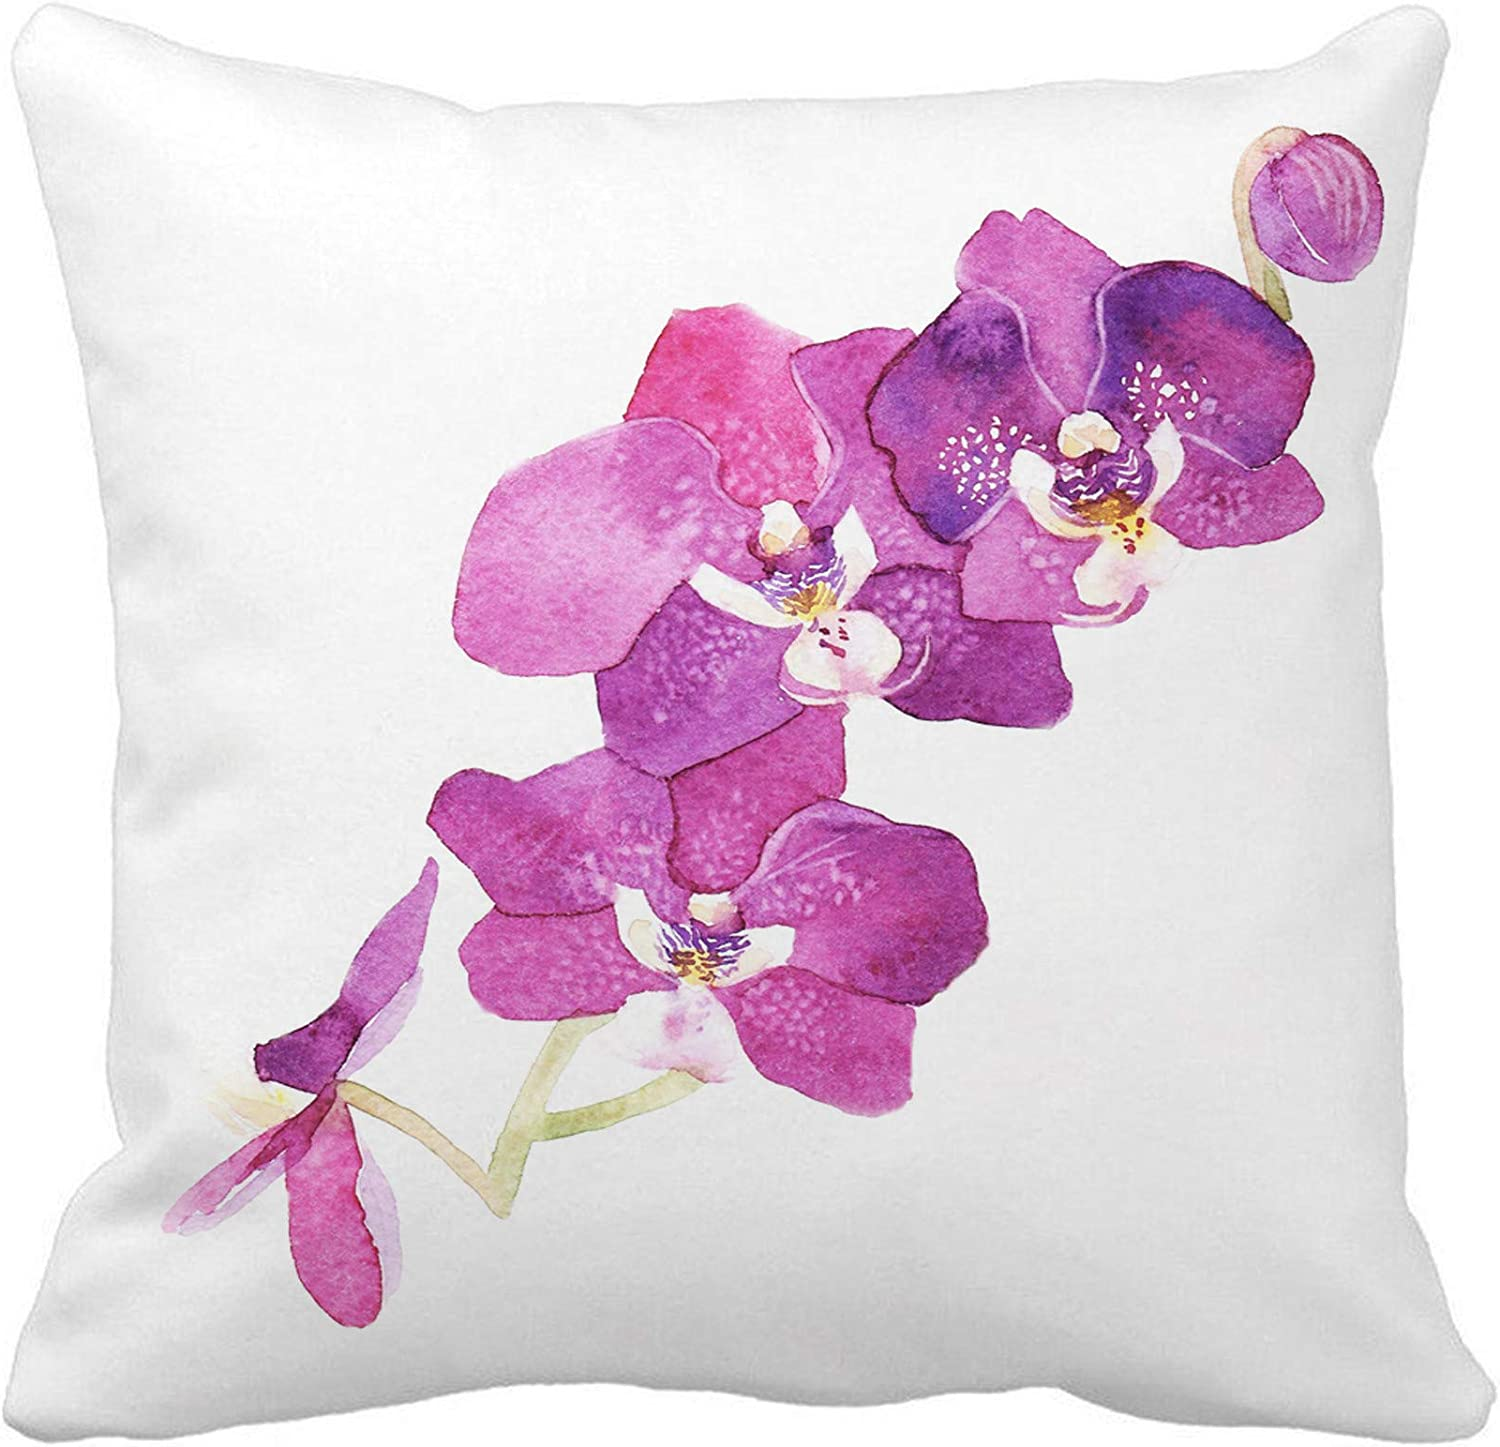 Amazon Com Awowee Throw Pillow Cover Colorful Floral Watercolor Purple Orchid Flower Green Tropical Abstract 18x18 Inches Pillowcase Home Decorative Square Pillow Case Cushion Cover Home Kitchen